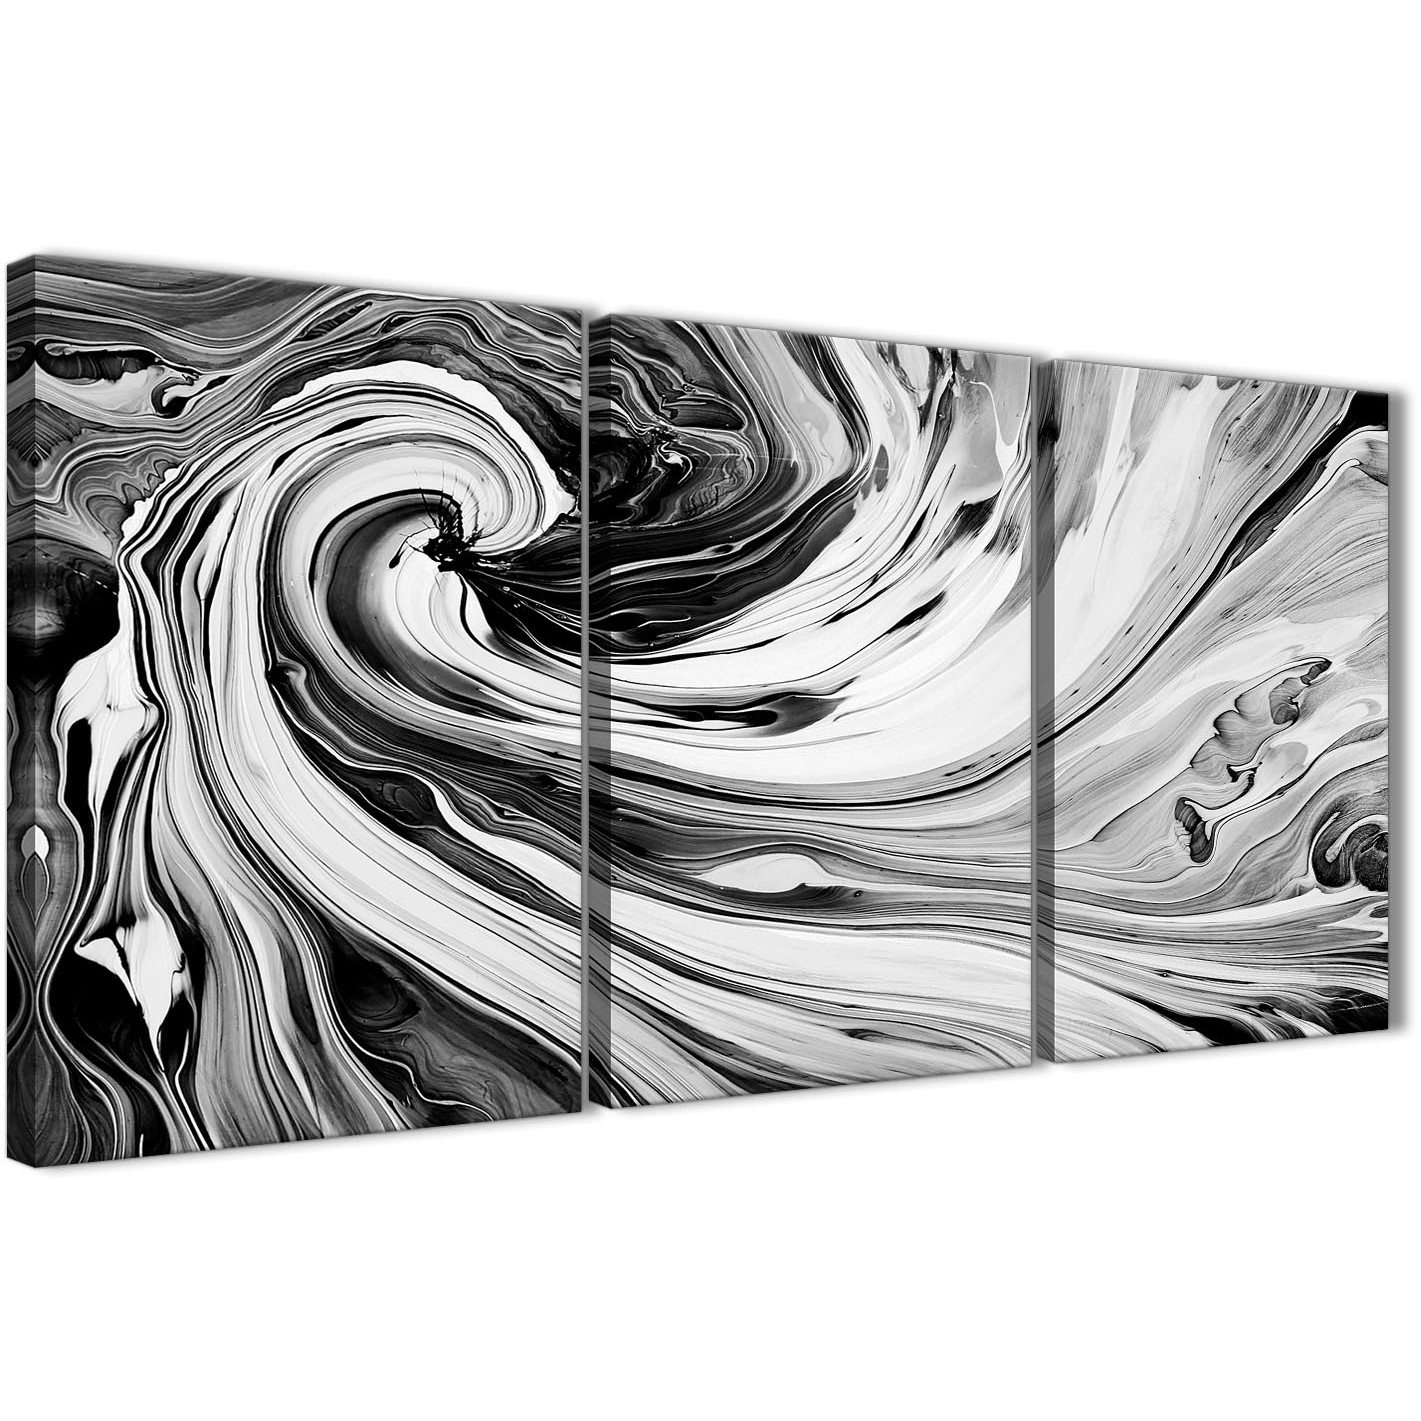 Black White Grey Swirls Modern Abstract Canvas Wall Art – Split 3 For Best And Newest Grey Abstract Canvas Wall Art (View 8 of 20)